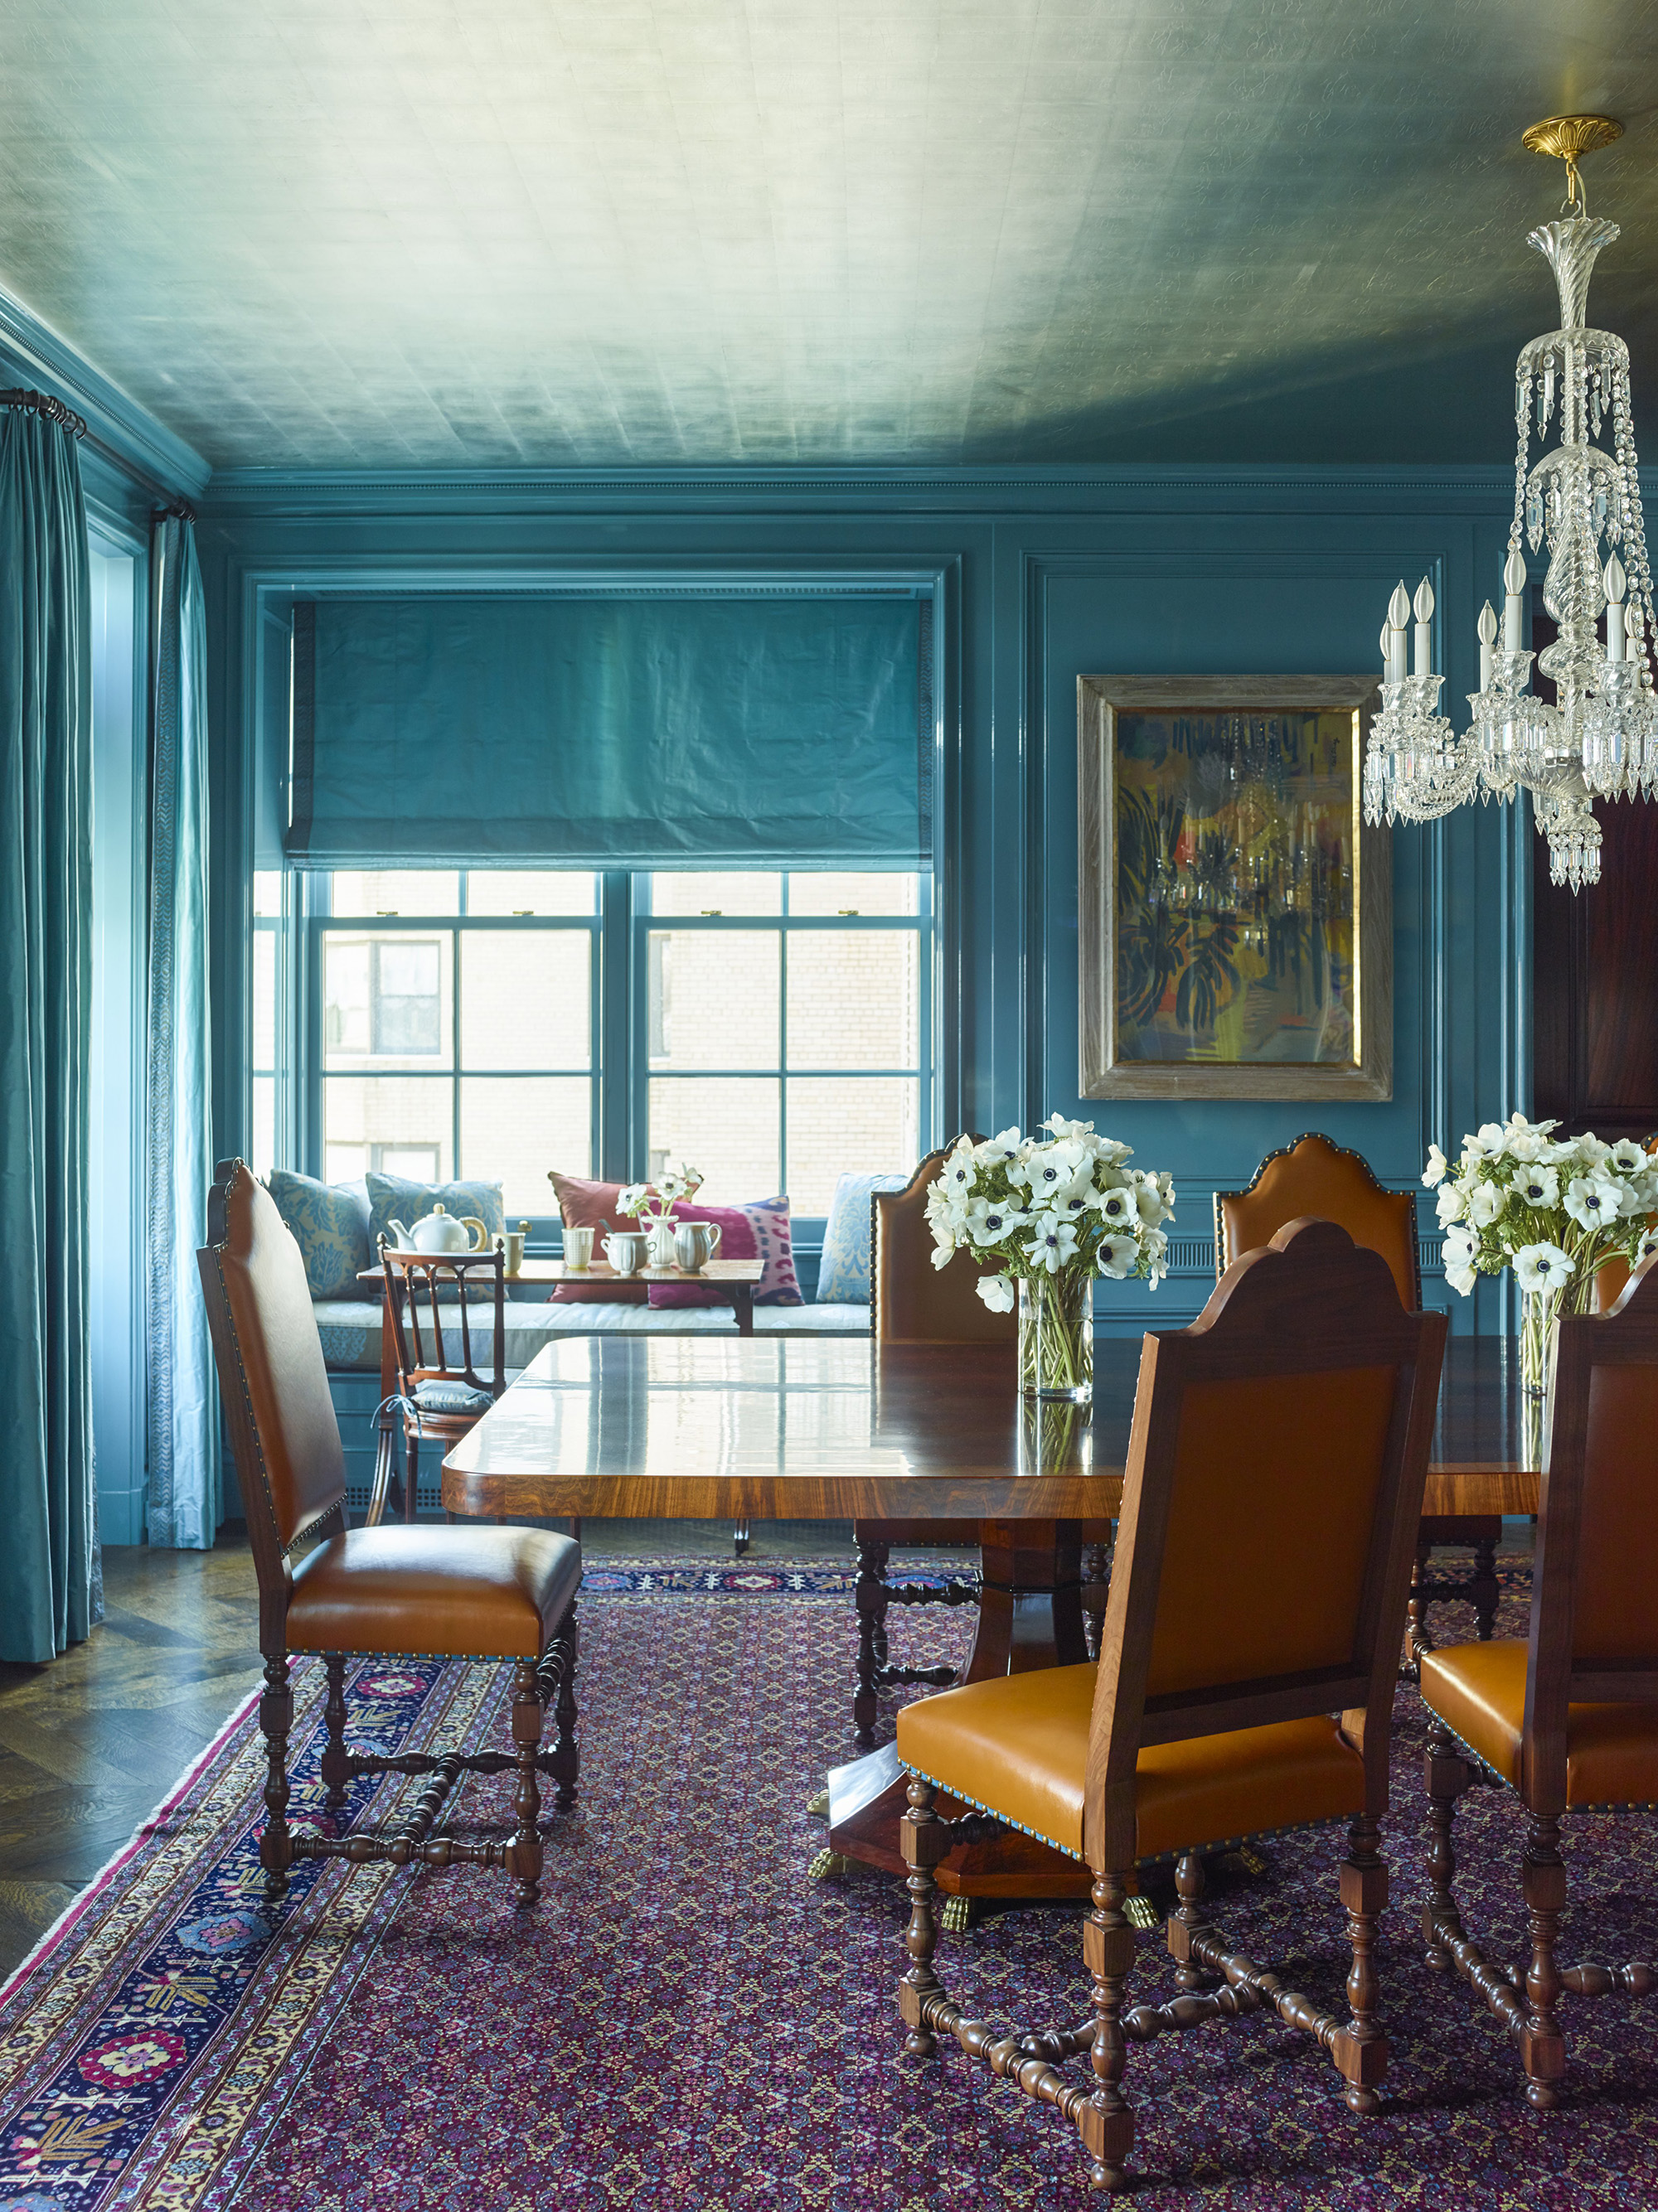 Ordinaire Katie Ridder Updates A Historic Apartment In Manhattan With Turquoise  Lacquered Walls And A Silver